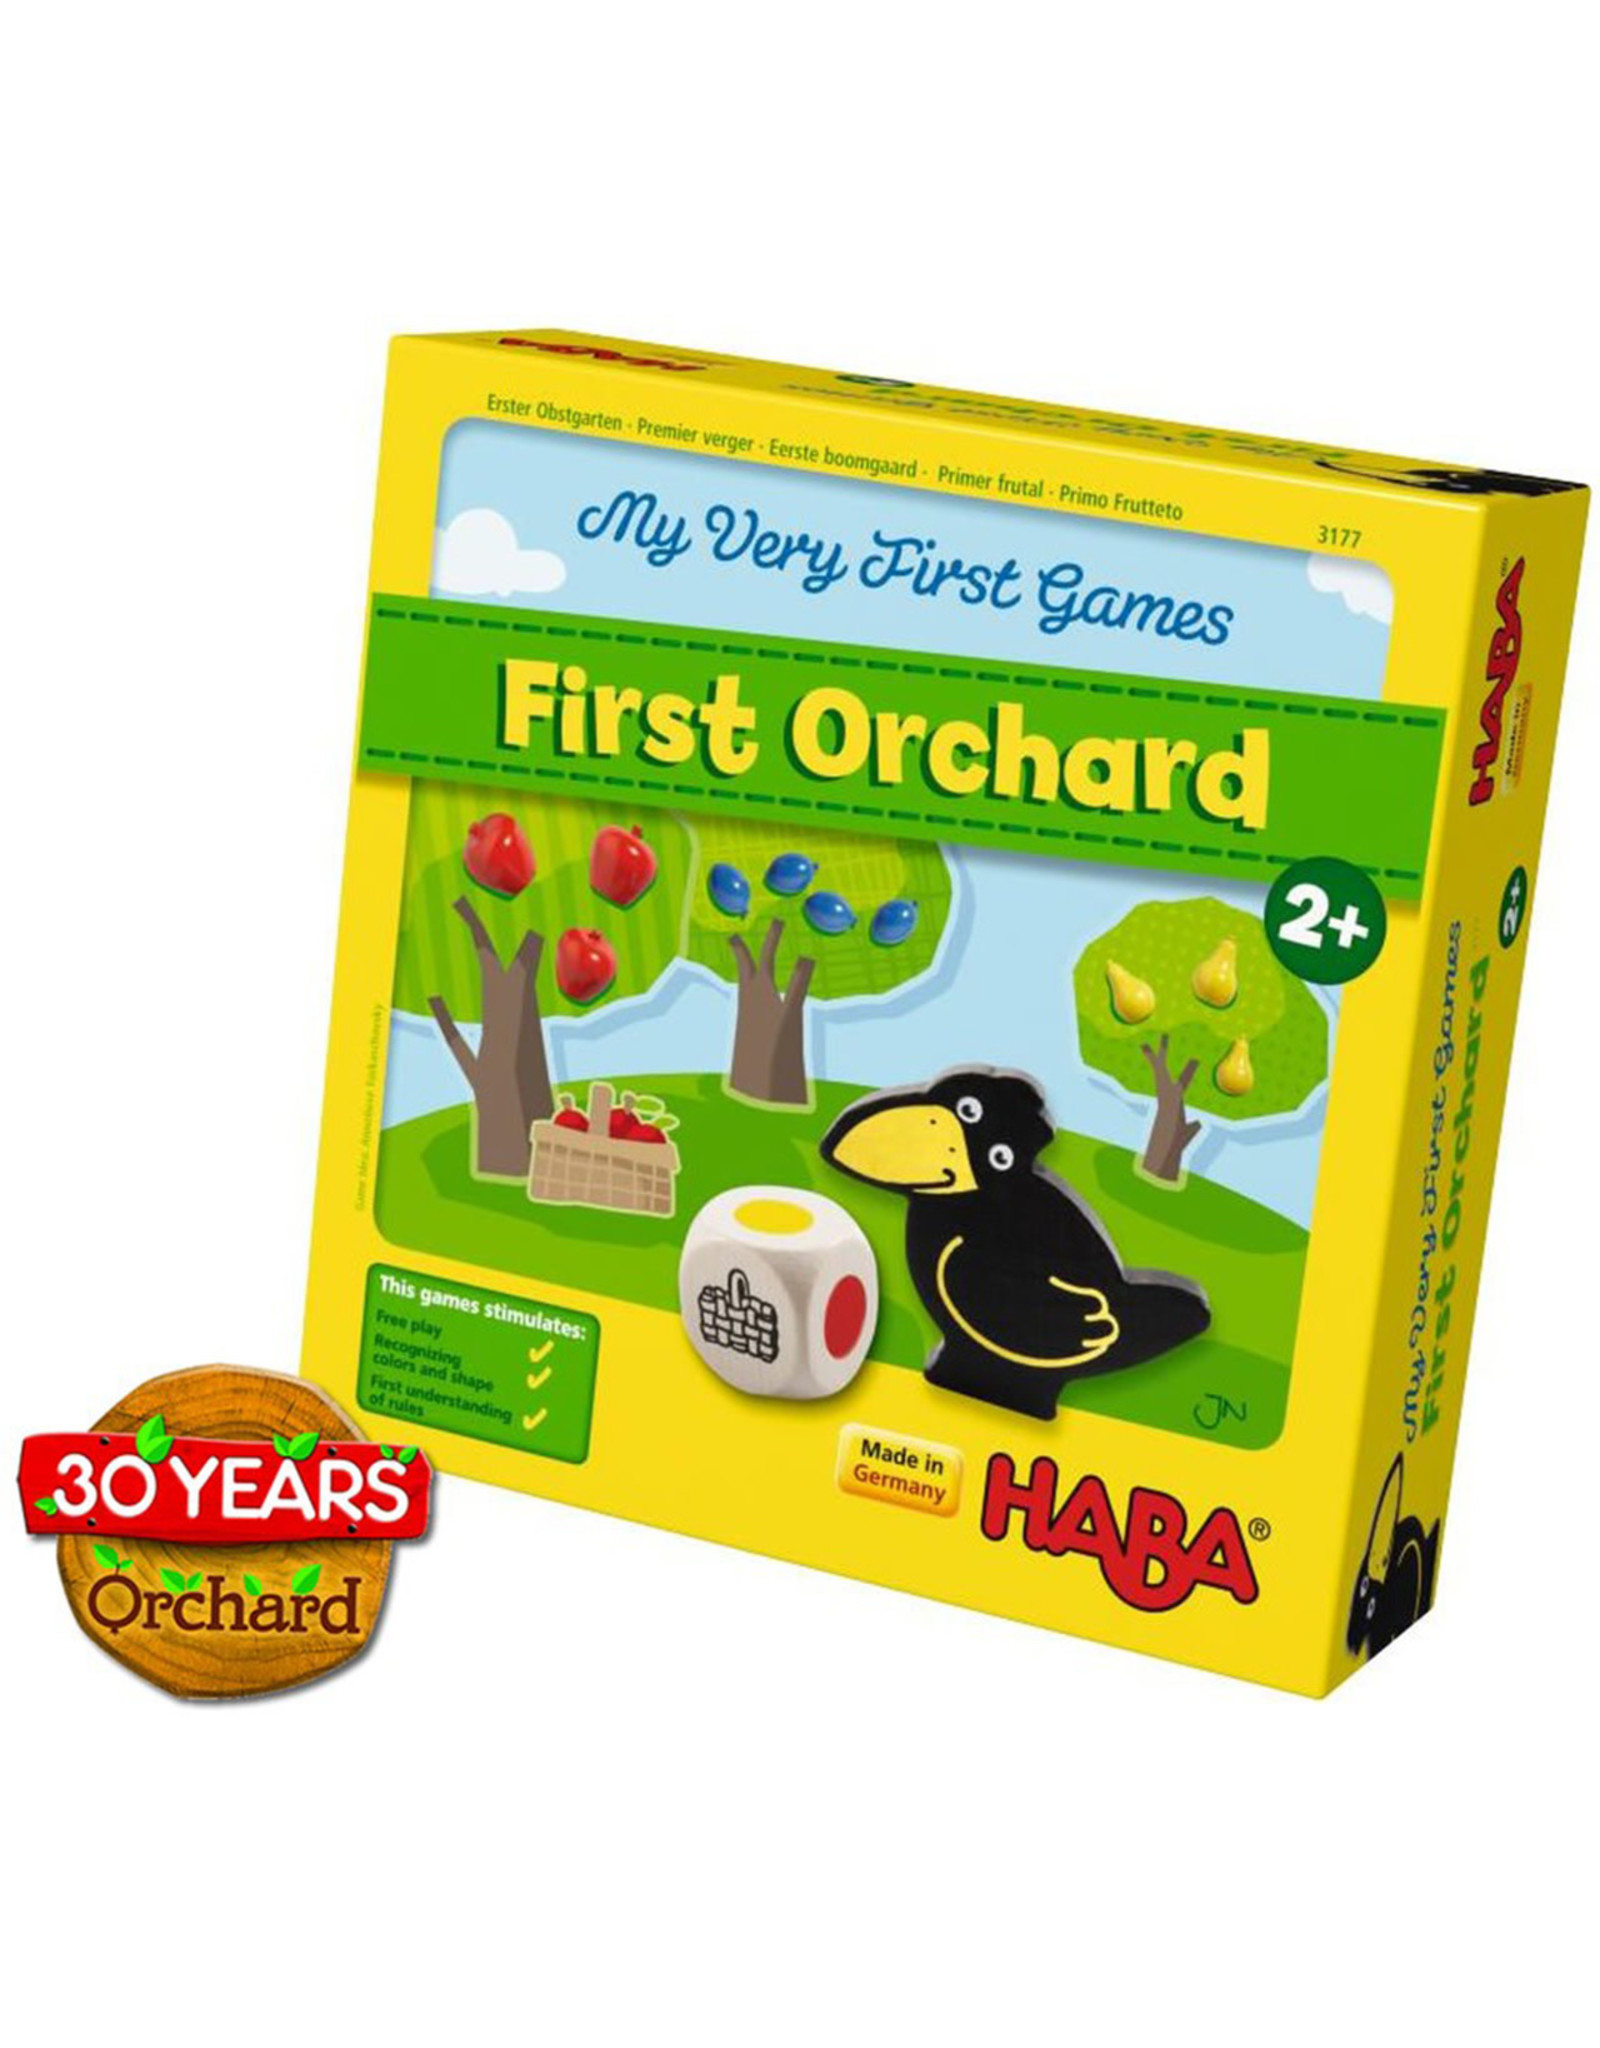 HABA GAMES MY VERY FIRST GAMES FIRST ORCHARD